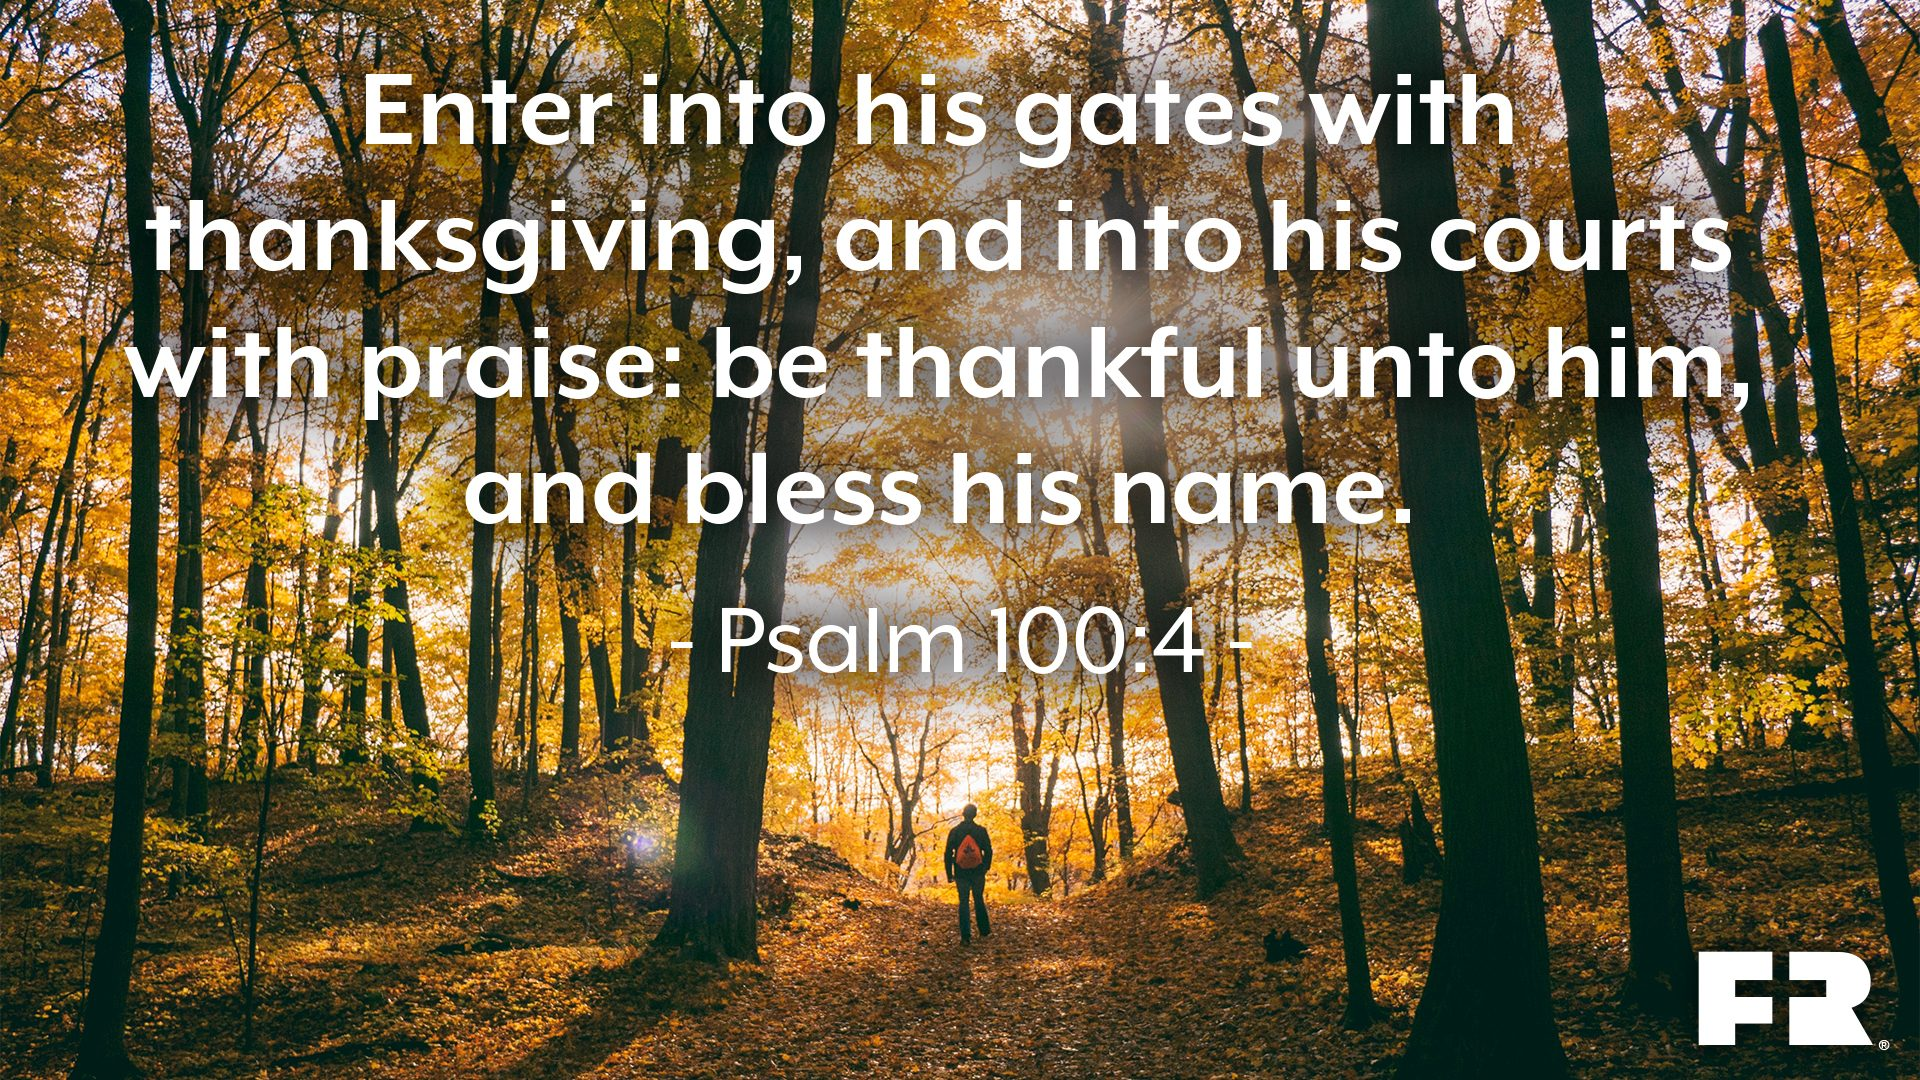 """Enter into his gates with thanksgiving, and into his courts with praise: be thankful unto him, and bless his name."""